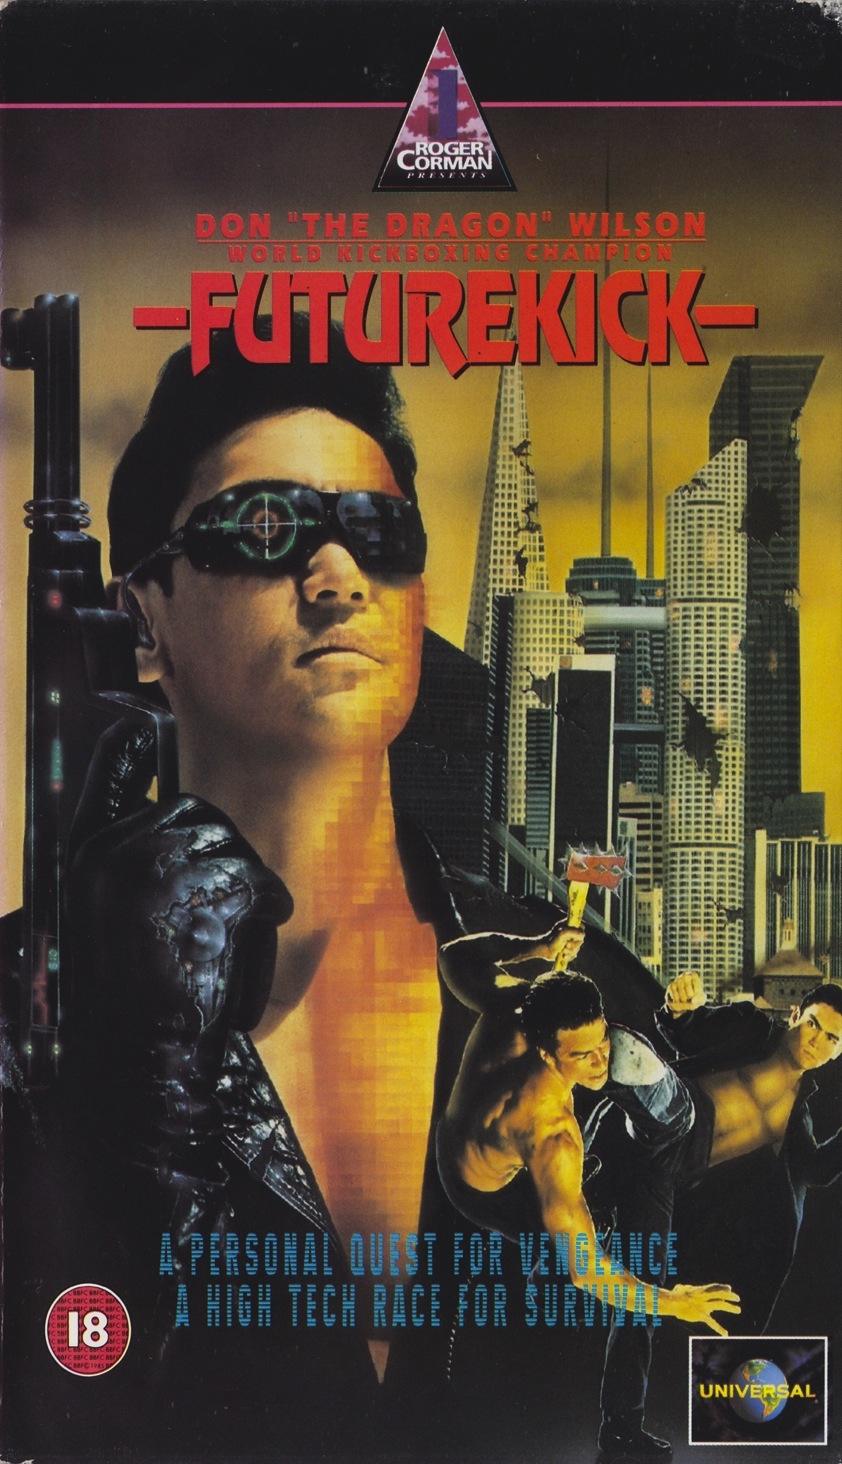 Future Kick (1991) Action, Sci-Fi - R : This sci-fi actioner is set in a future that is ruled by technology and gigantic corporations. It centers on a woman's attempts to solve the puzzling murder of her husband, a prominent engineer who has found out far too much about a company that has been dealing in valuable human body parts. To assist her search, the wife hires kick-boxing